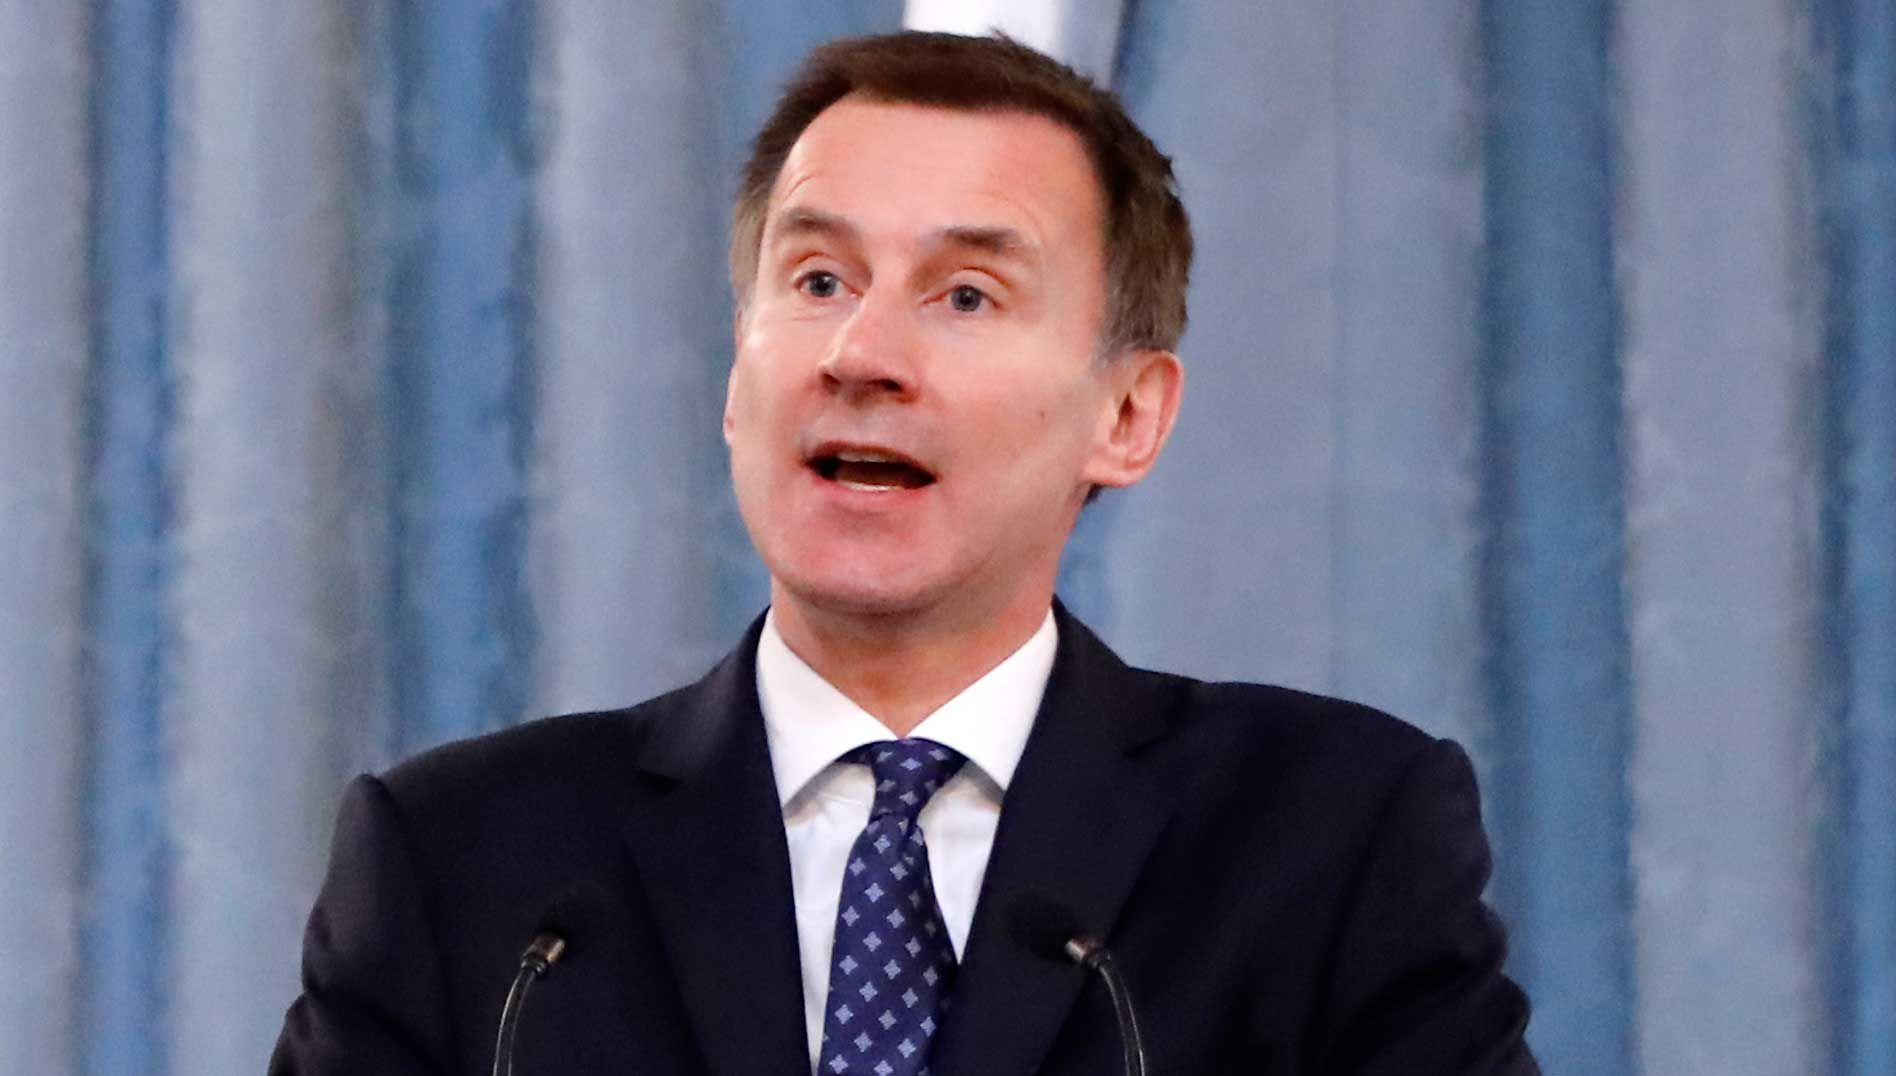 British foreign secretary Jeremy Hunt in London.